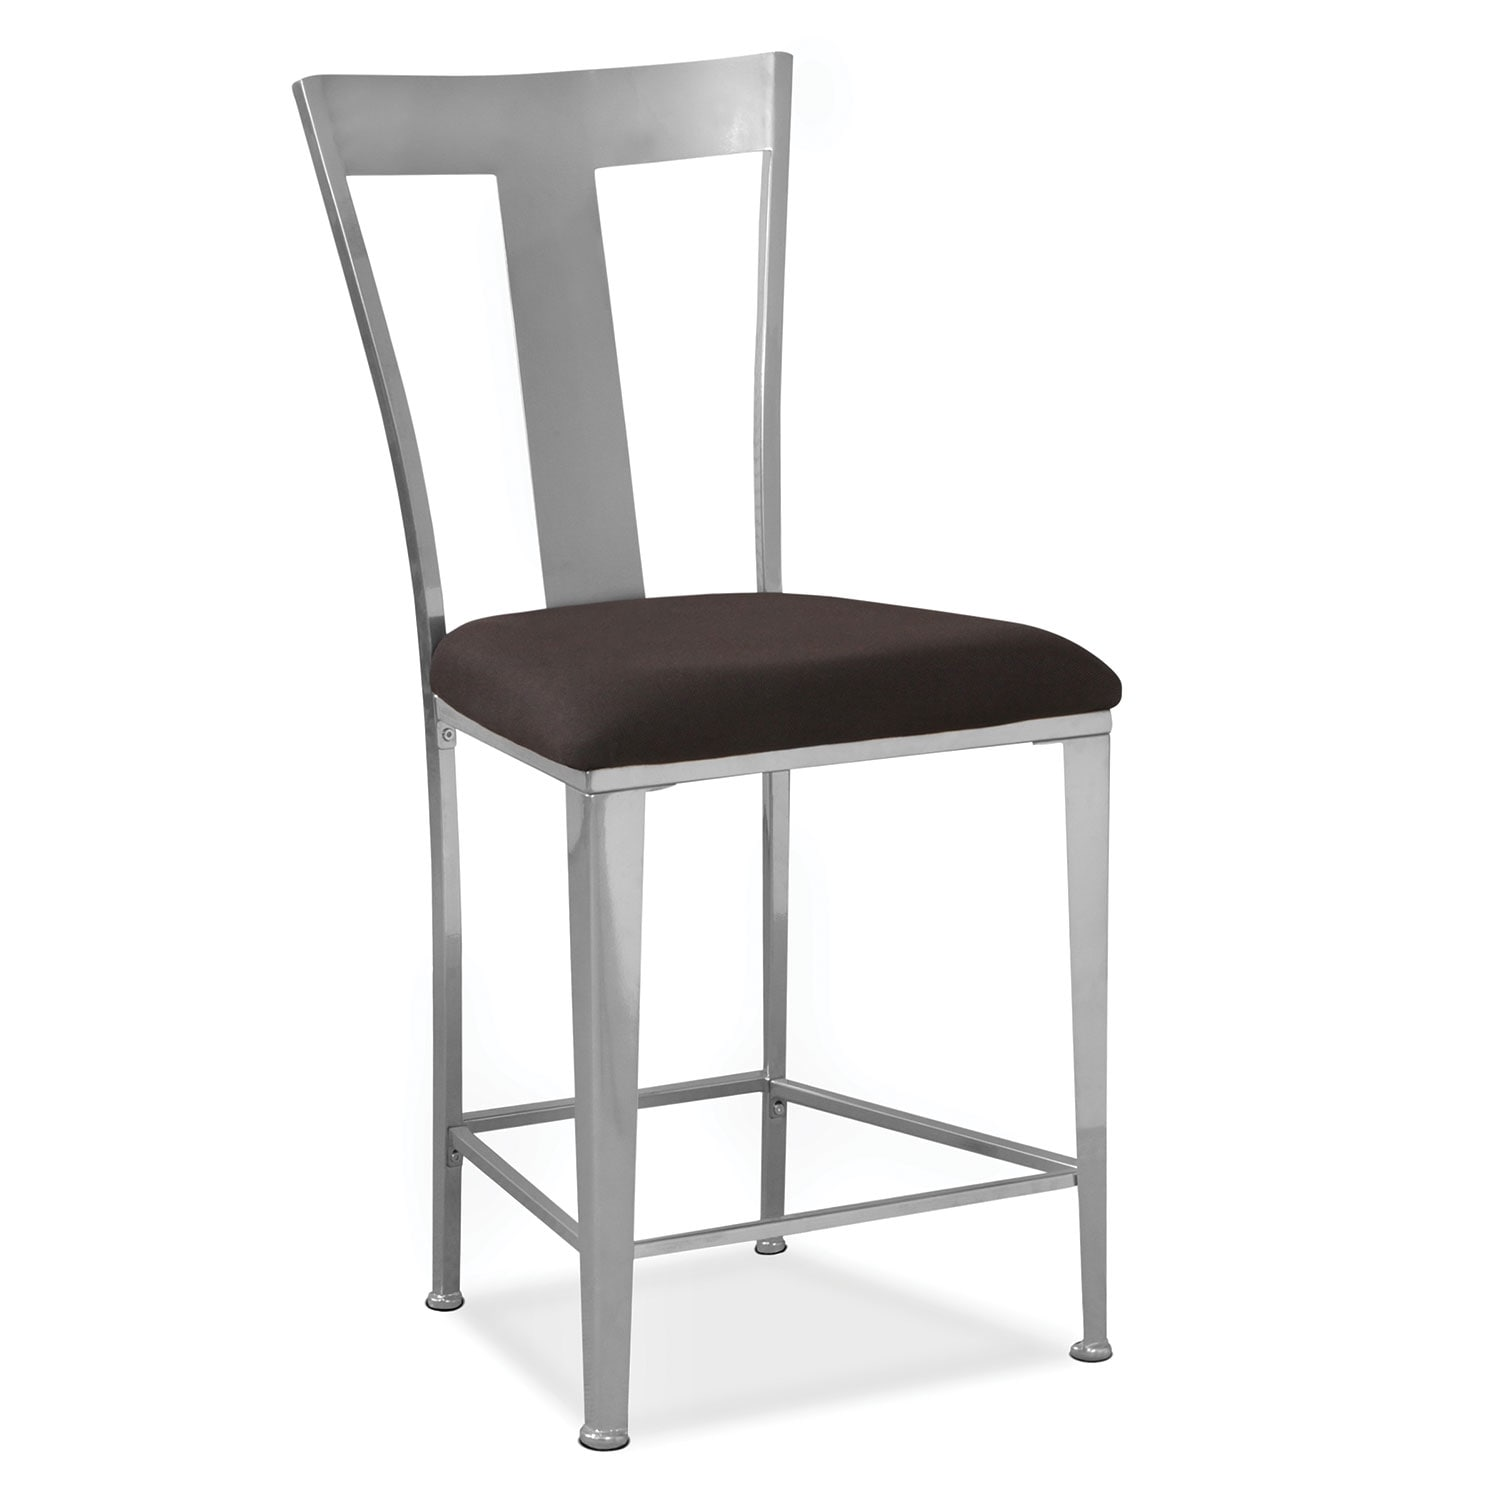 Dining Room Furniture - Silverton Counter-Height Stool - Silver